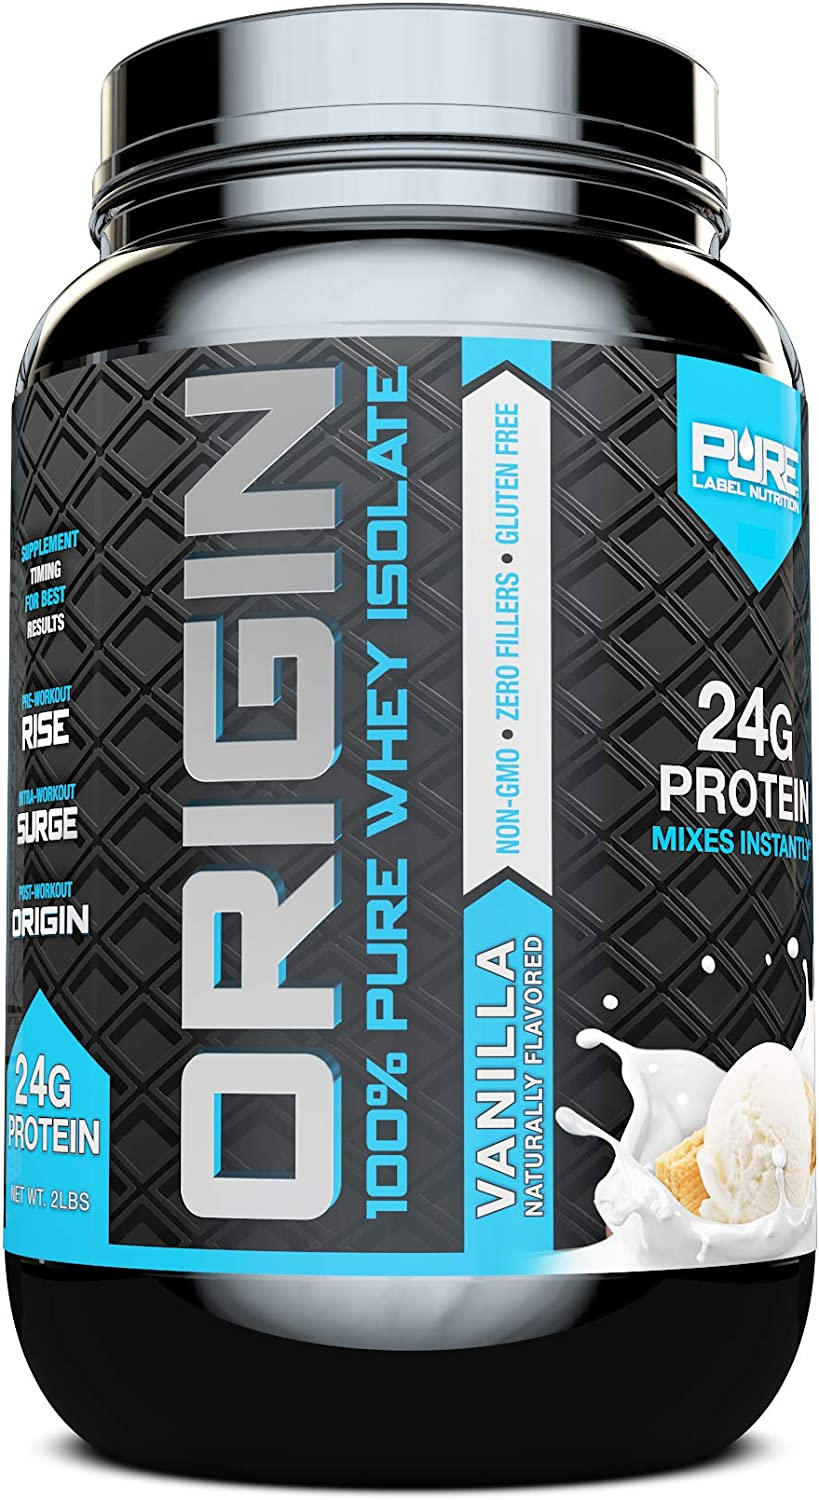 Whey Protein Isolate, Cold Processed Undenatured, Keto Friendly Whey Protein Powder, Non GMO, Gluten Free, Lactose Free, Sugar Free, 2 pounds Vanilla